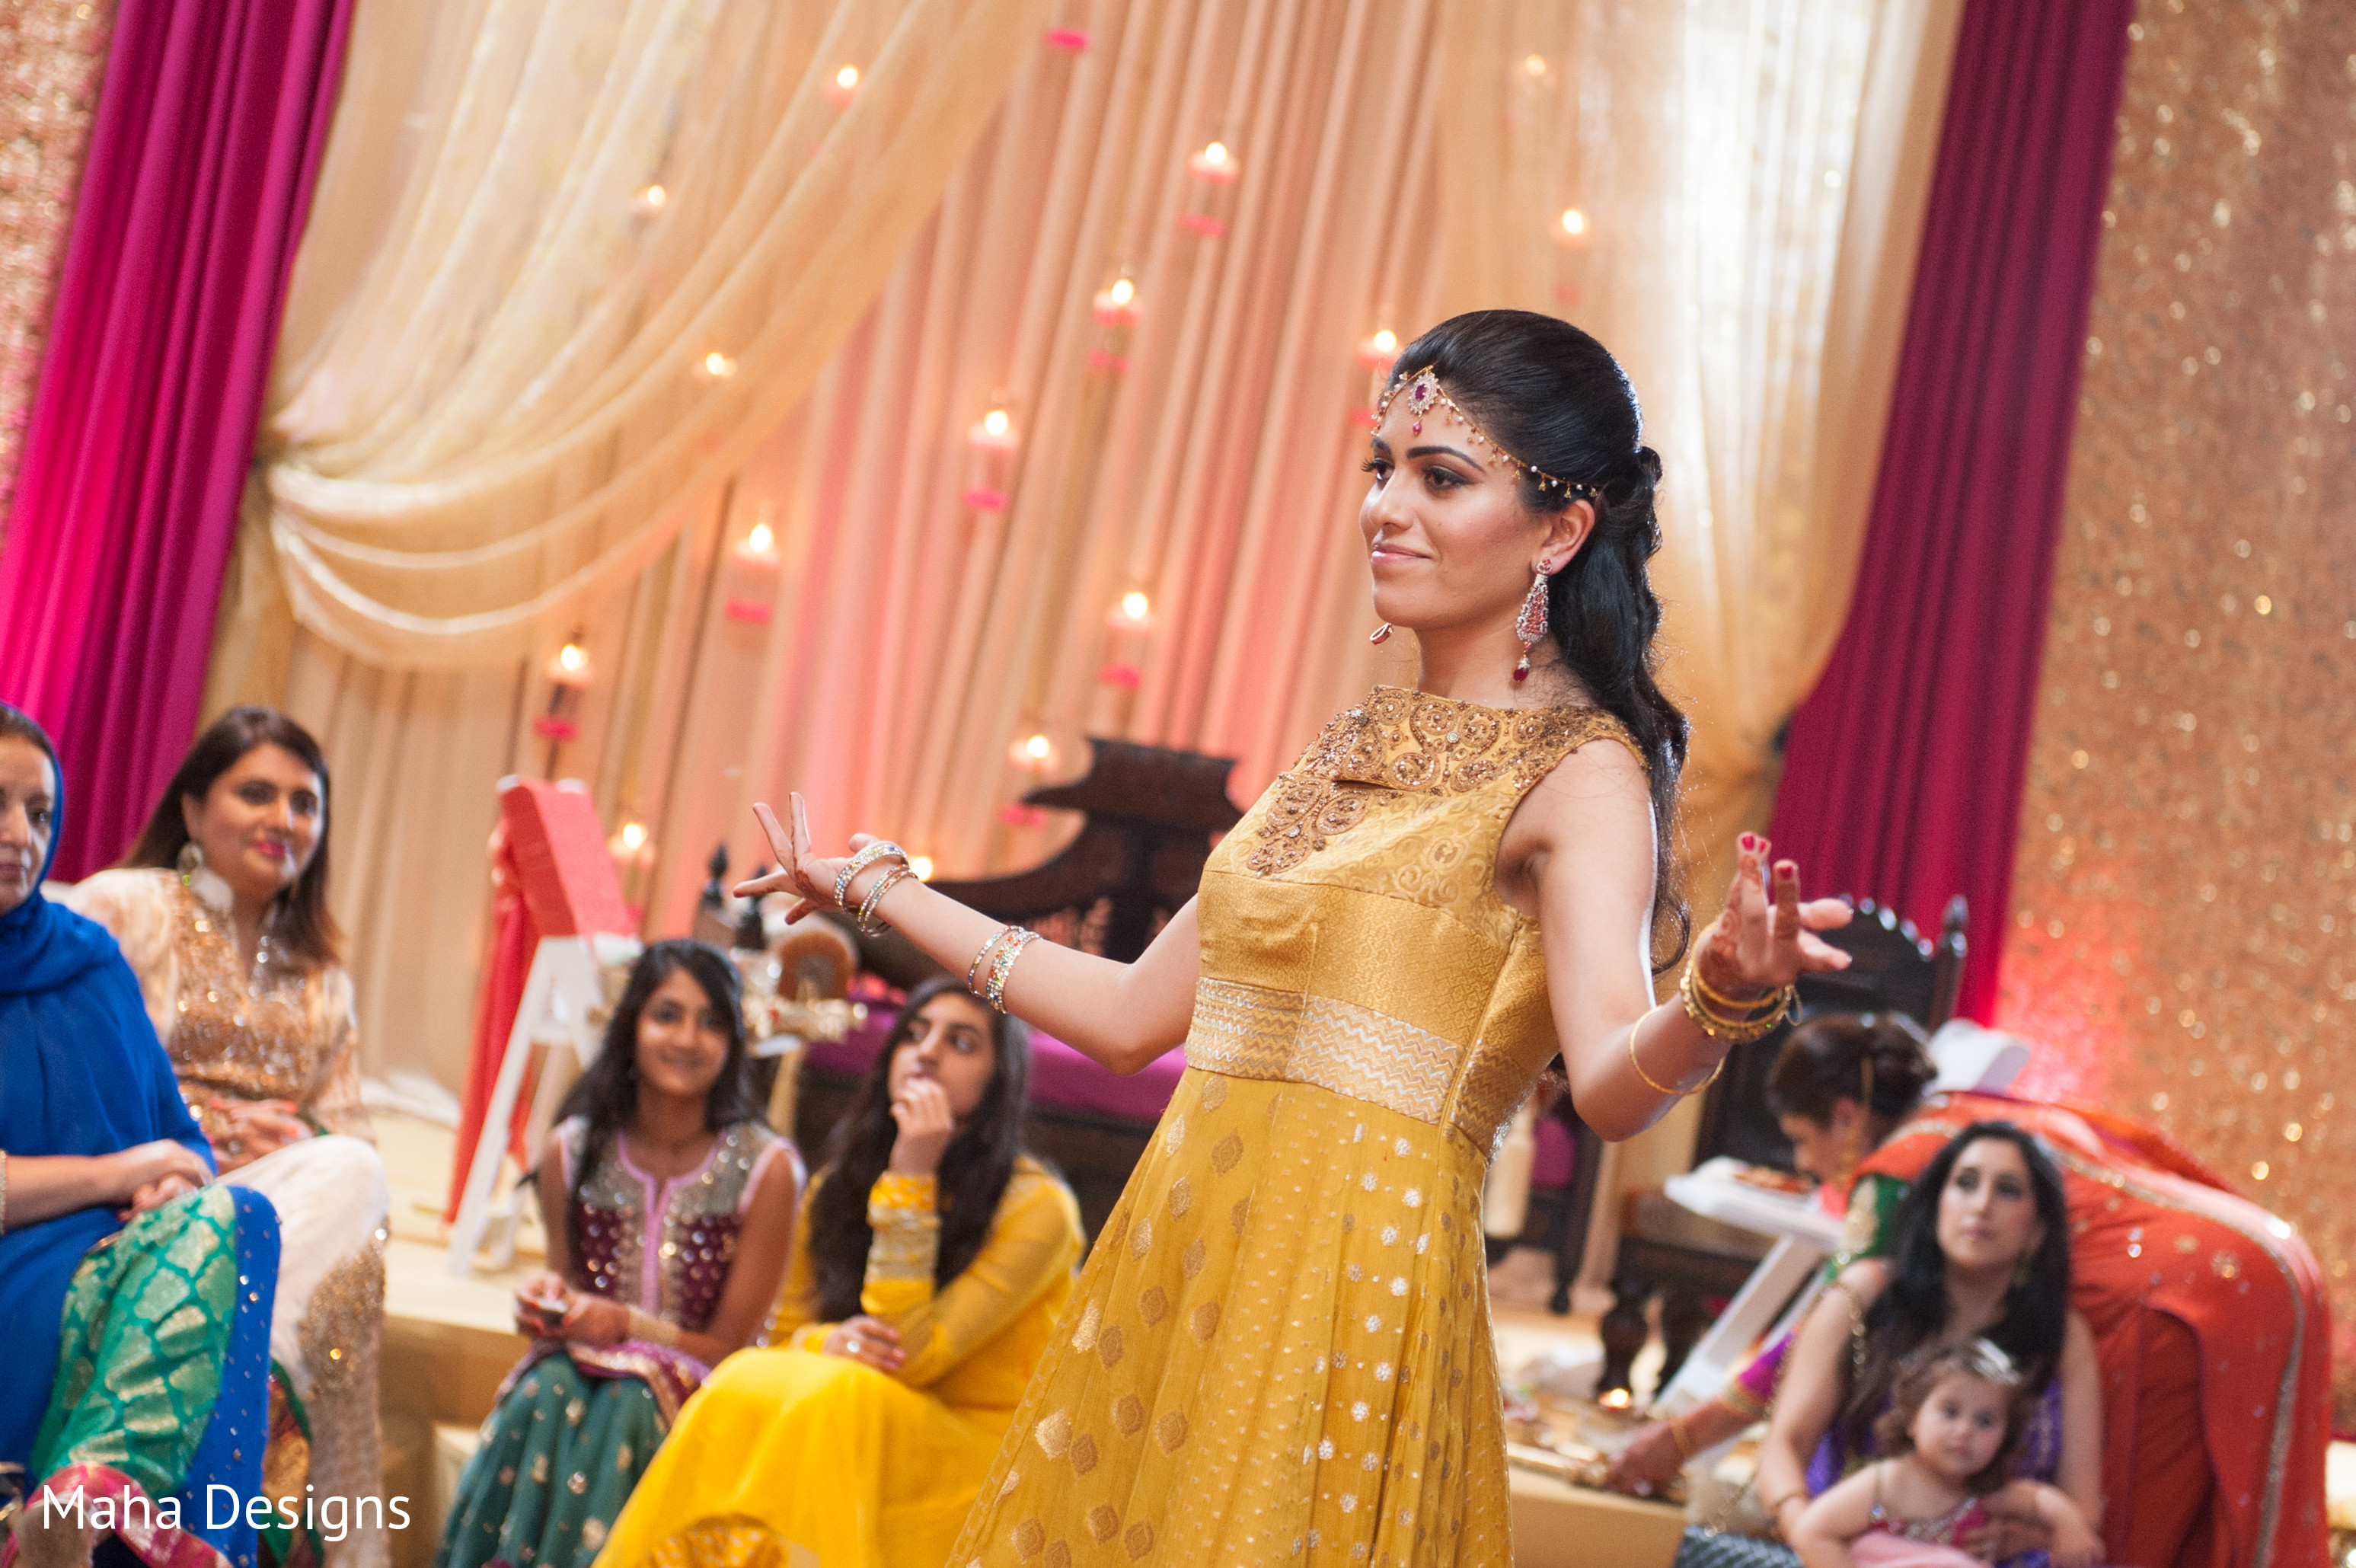 Mehndi Party Saree : Mehndi party in chicago il pakistani wedding by maha designs